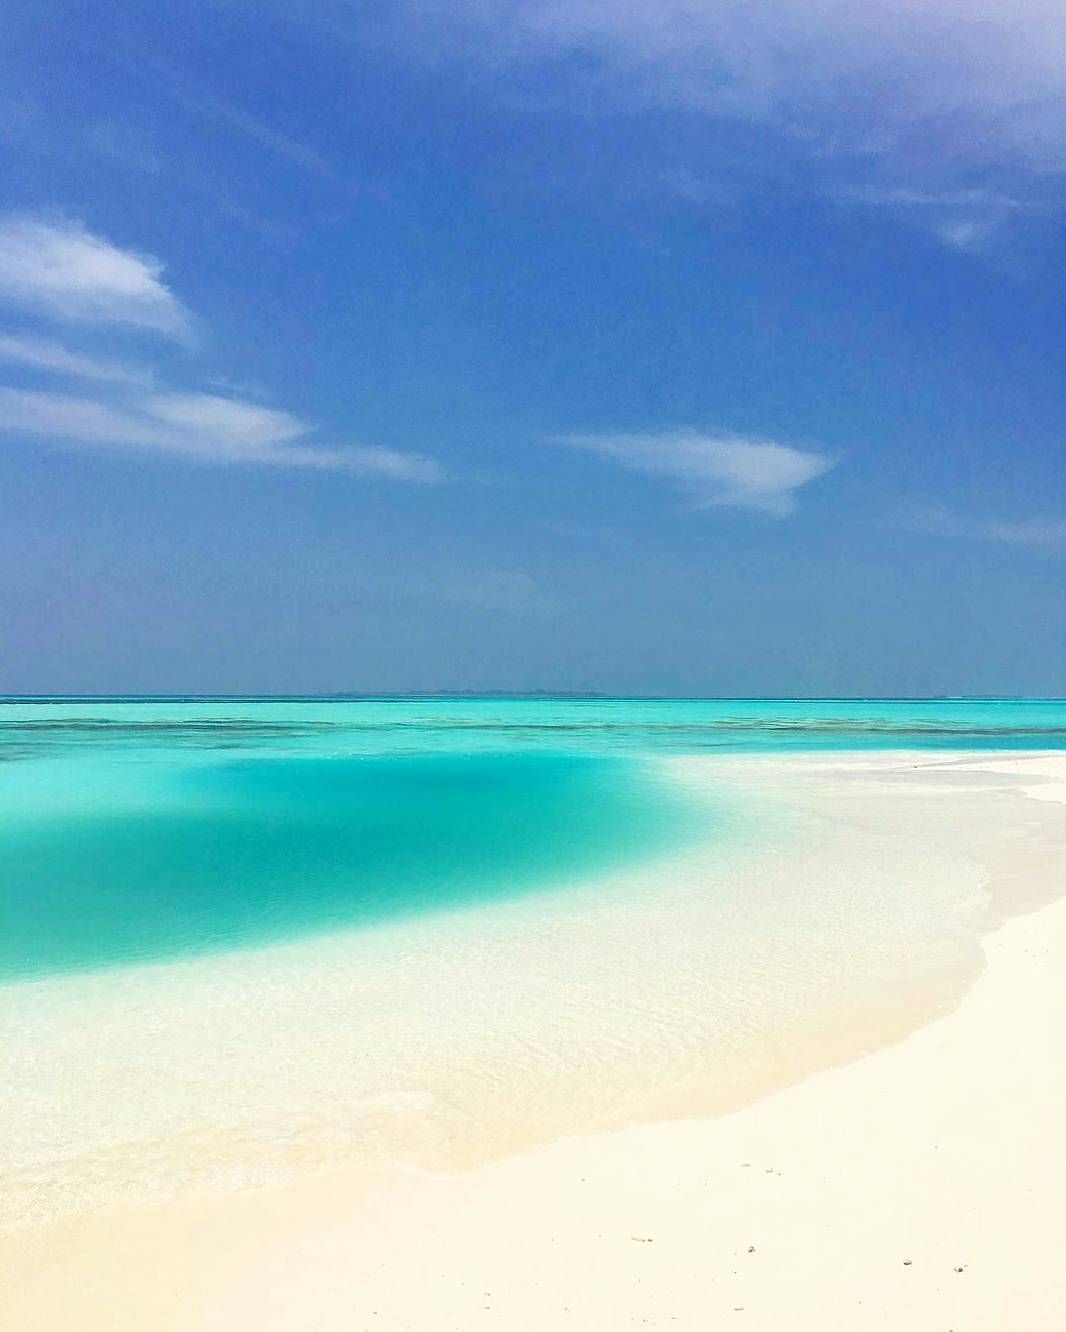 Tropical Beach And Peaceful Ocean: Kanuhura #Maldives Peaceful, Lovely & Relaxing Ocean, Sea